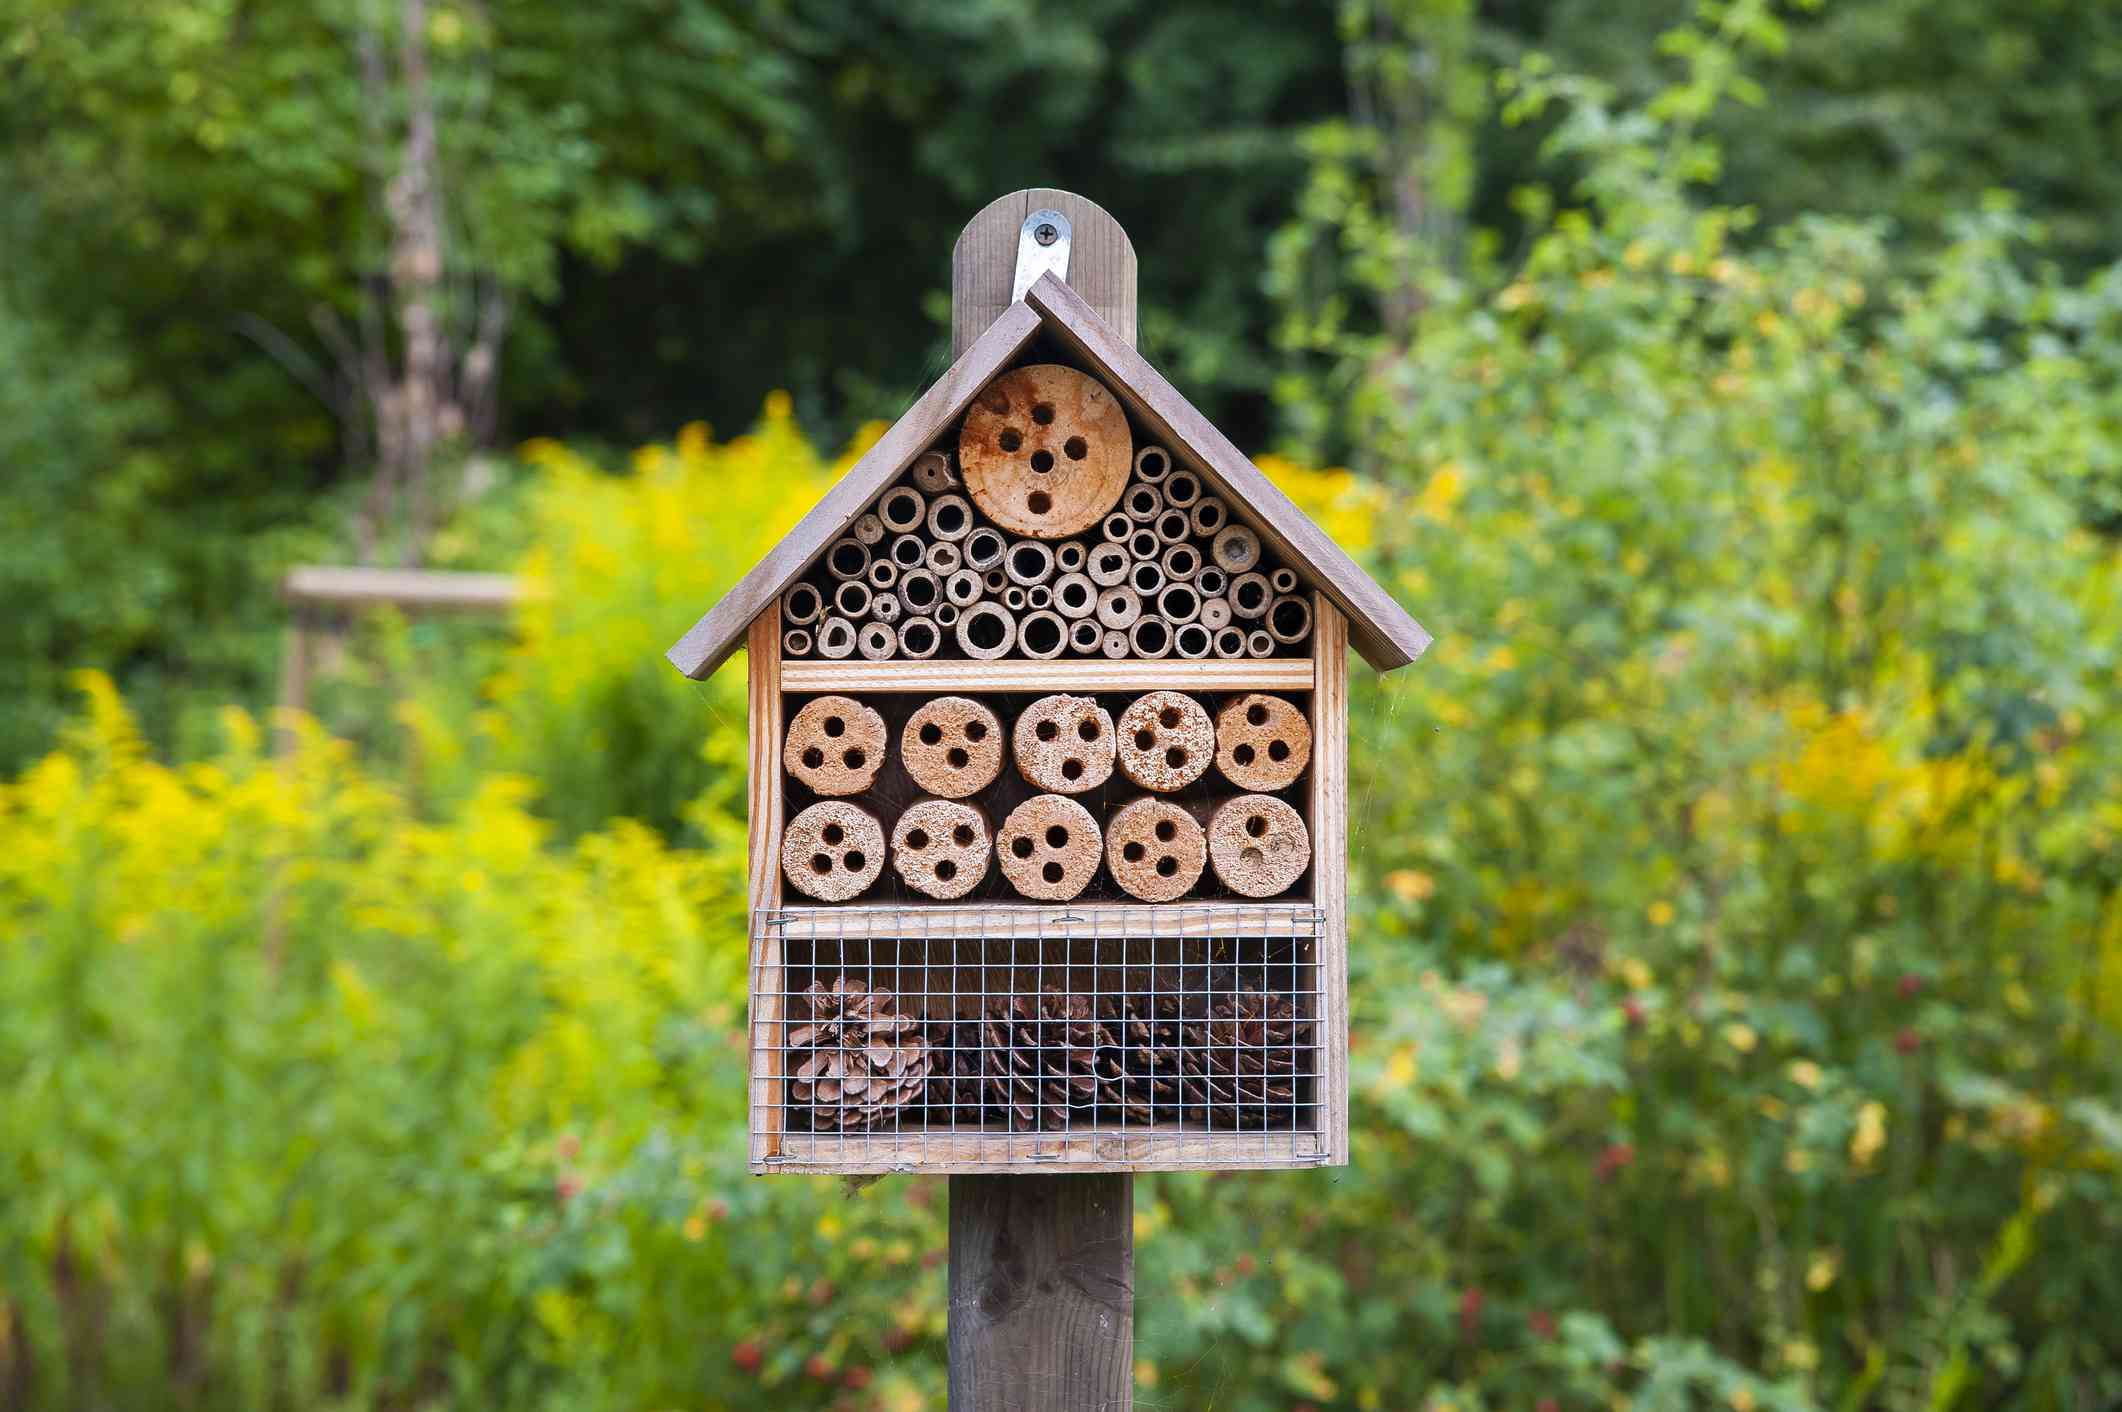 An insect hotel in a garden.